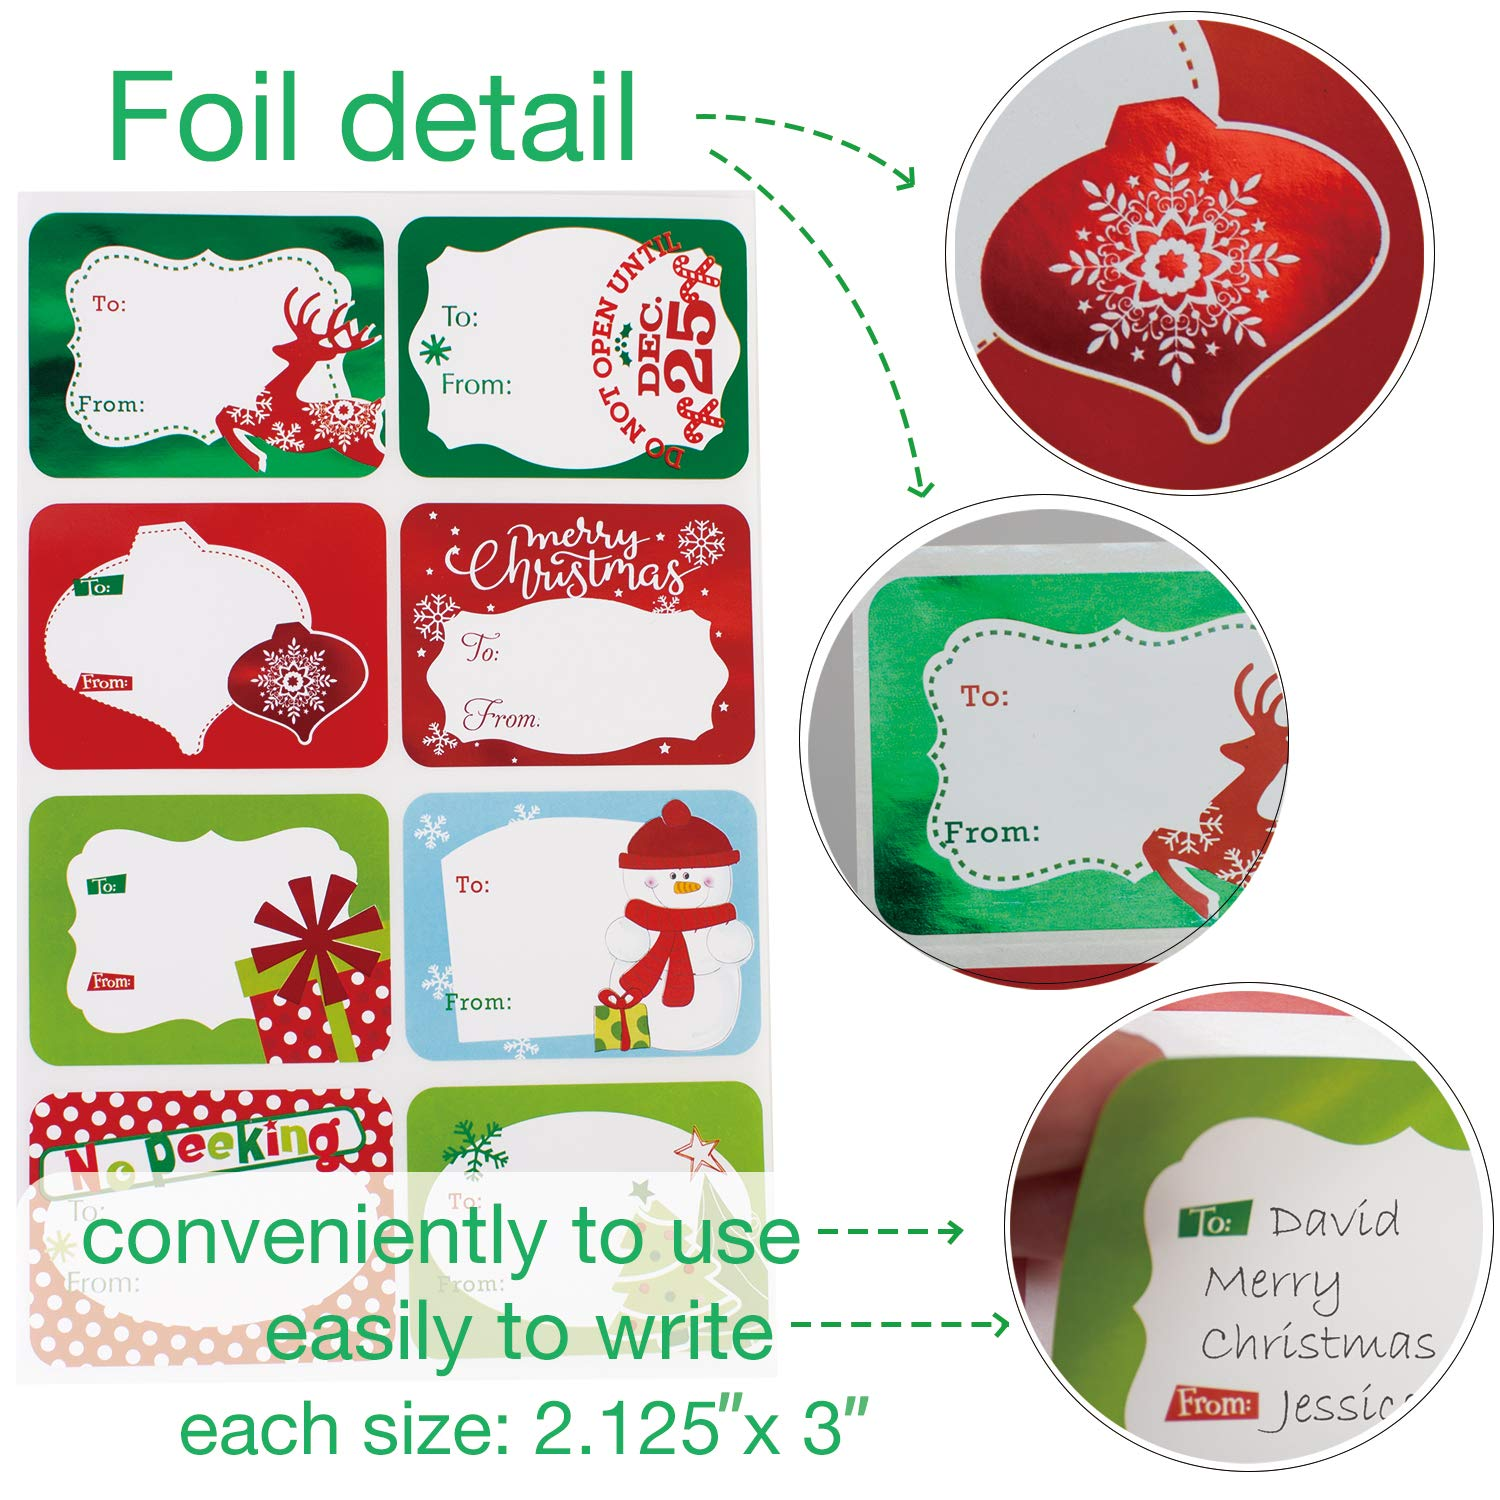 Christmas Stickers.80 Count Foil Christmas Gift Tags Sticker 8 Jumbo Designs Xmas To From Christmas Stickers Name Tags Write On Labels Holiday Present Labels